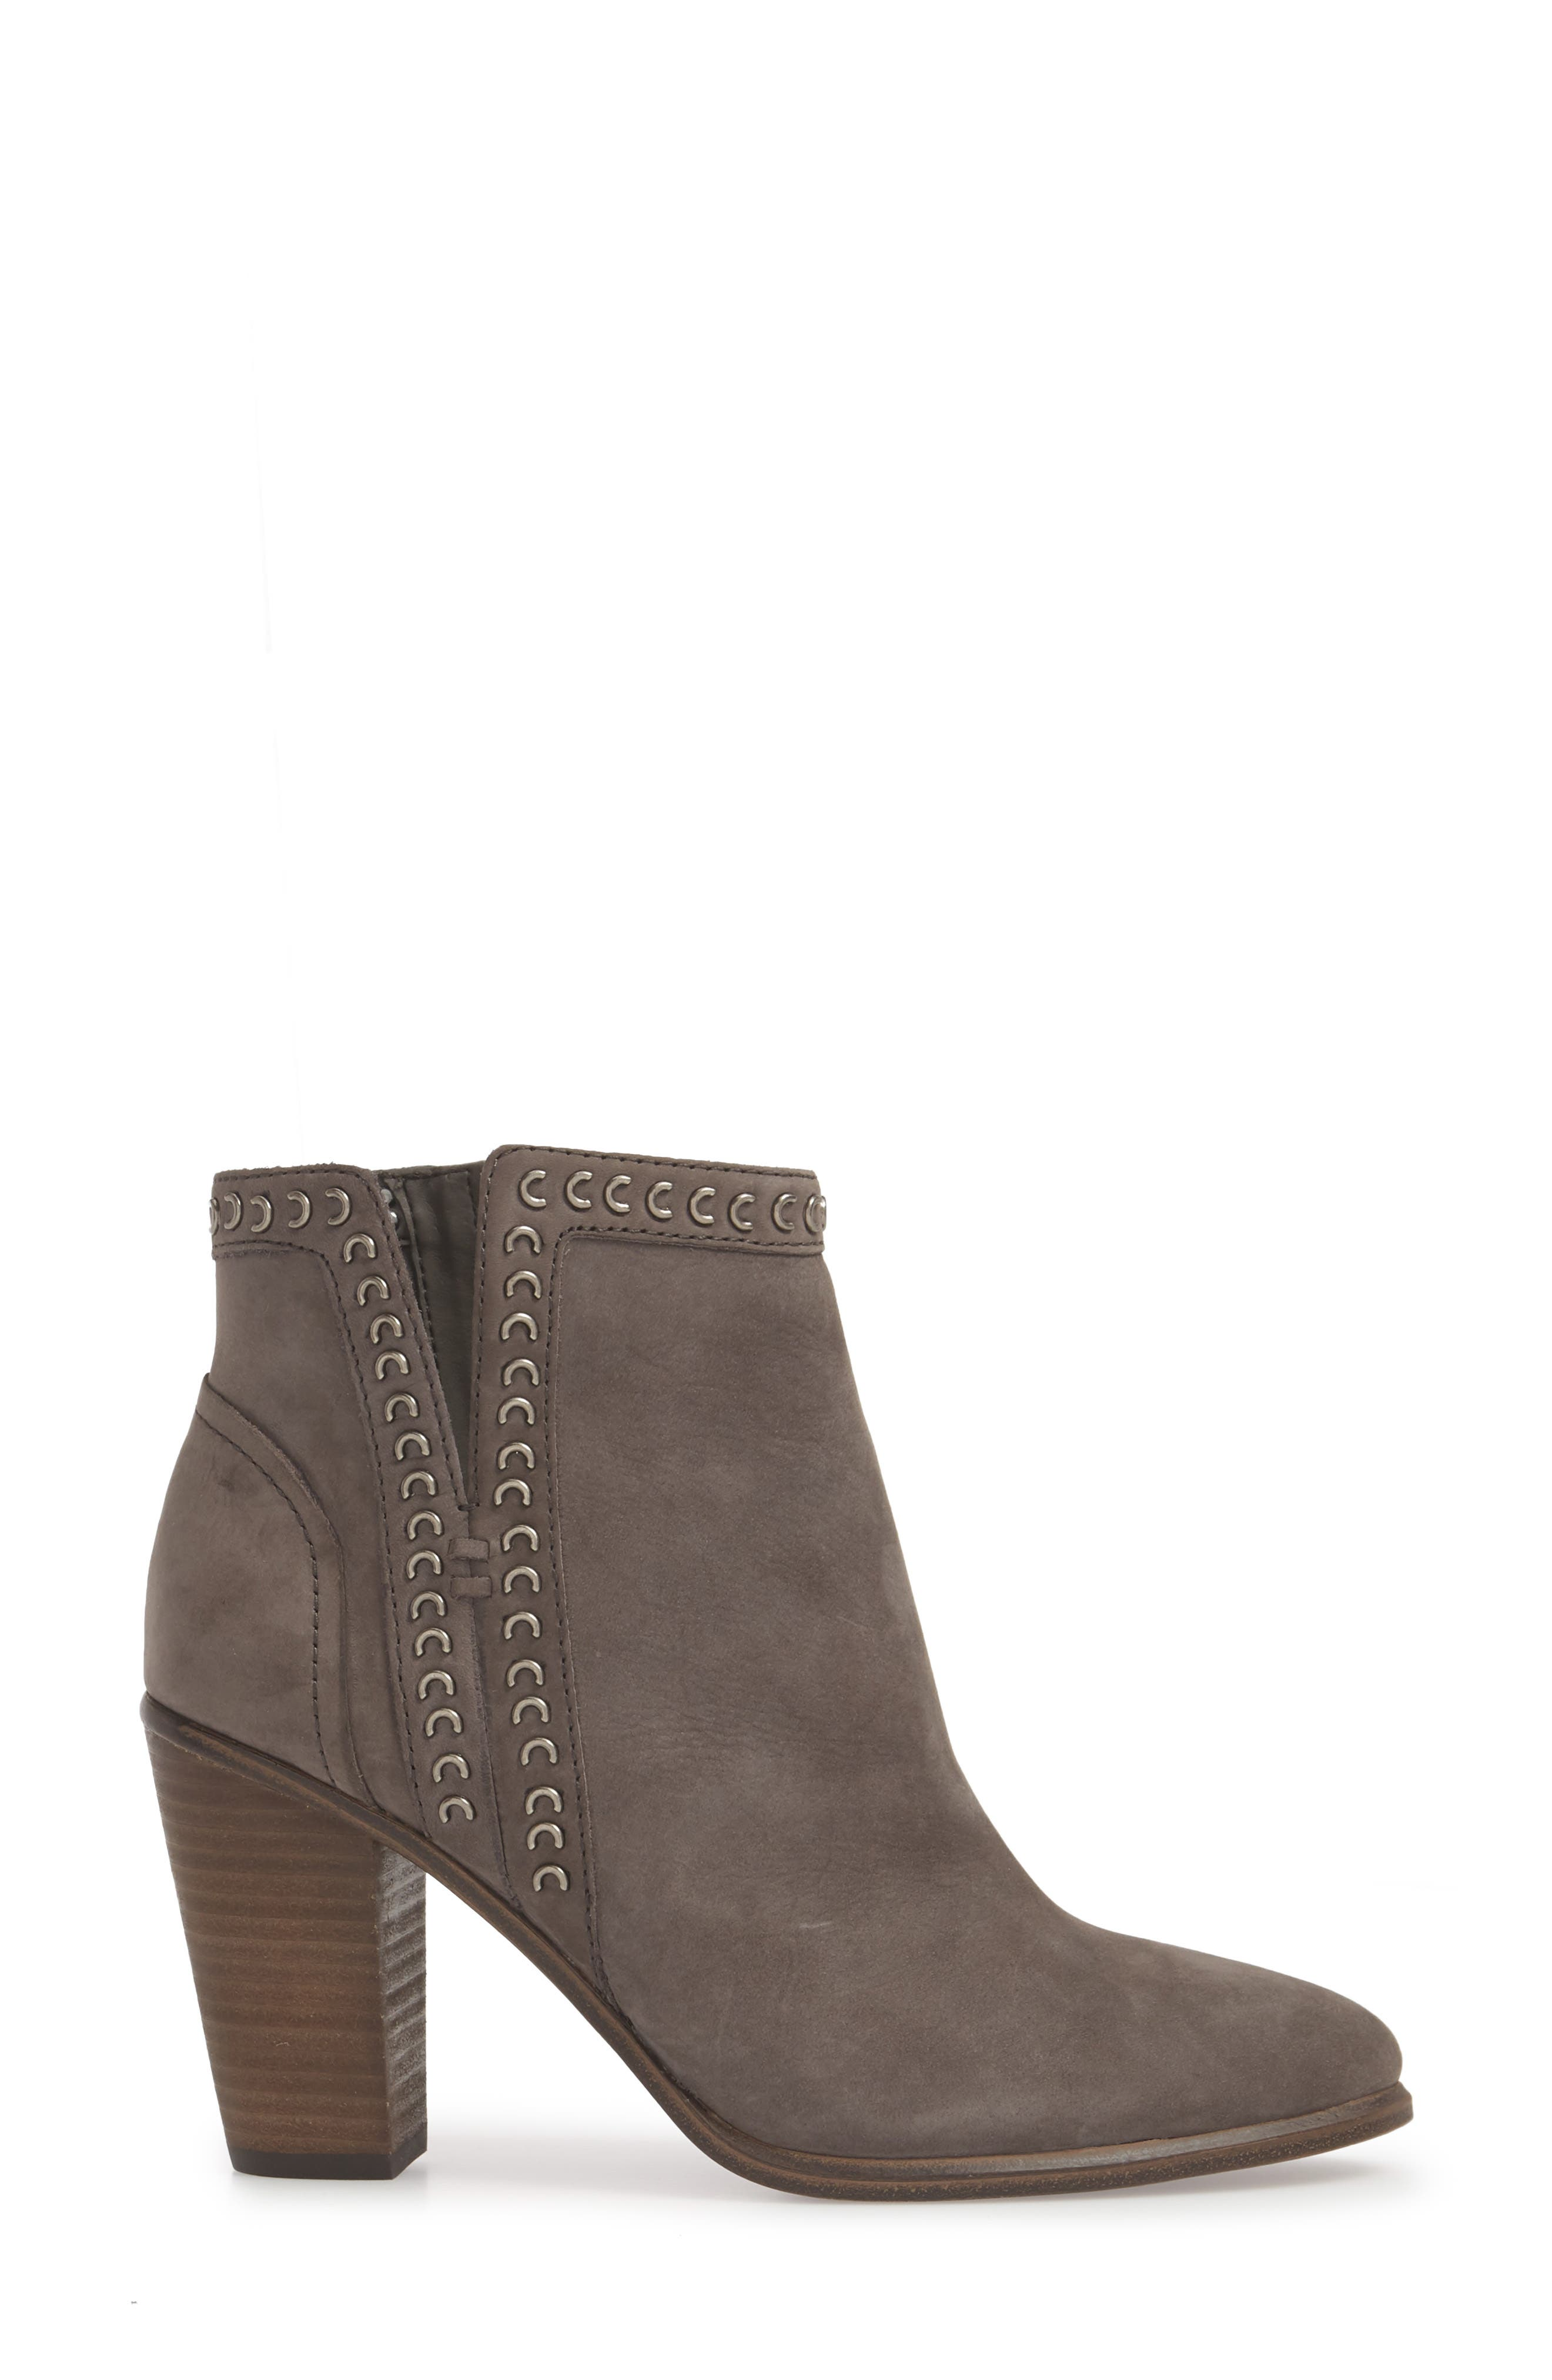 Finchie Bootie,                             Alternate thumbnail 3, color,                             Greystone Leather